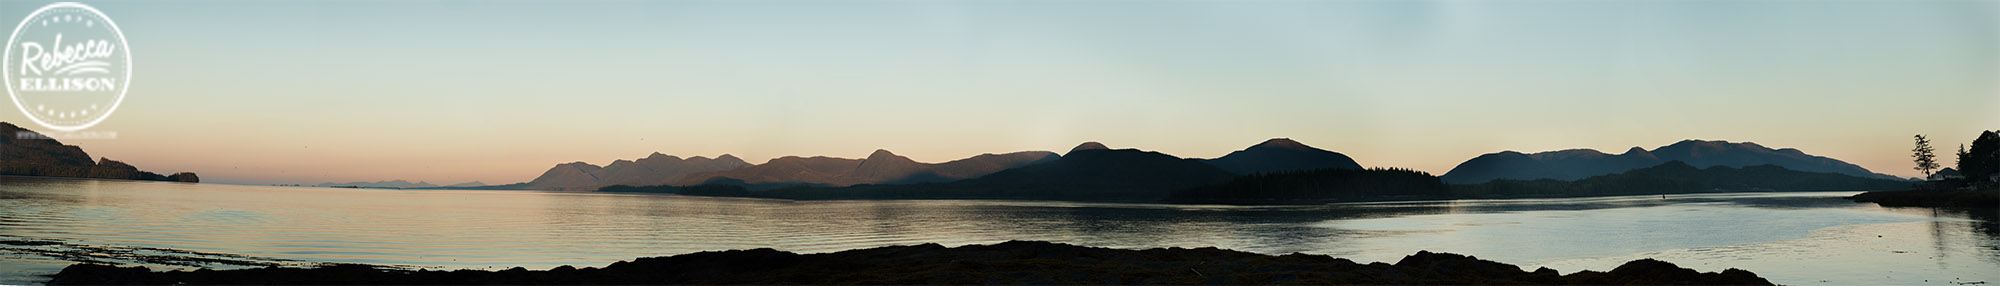 Ketchikan Sunrise panorama of the ocean and mountains photographed by Rebecca Ellison Photography